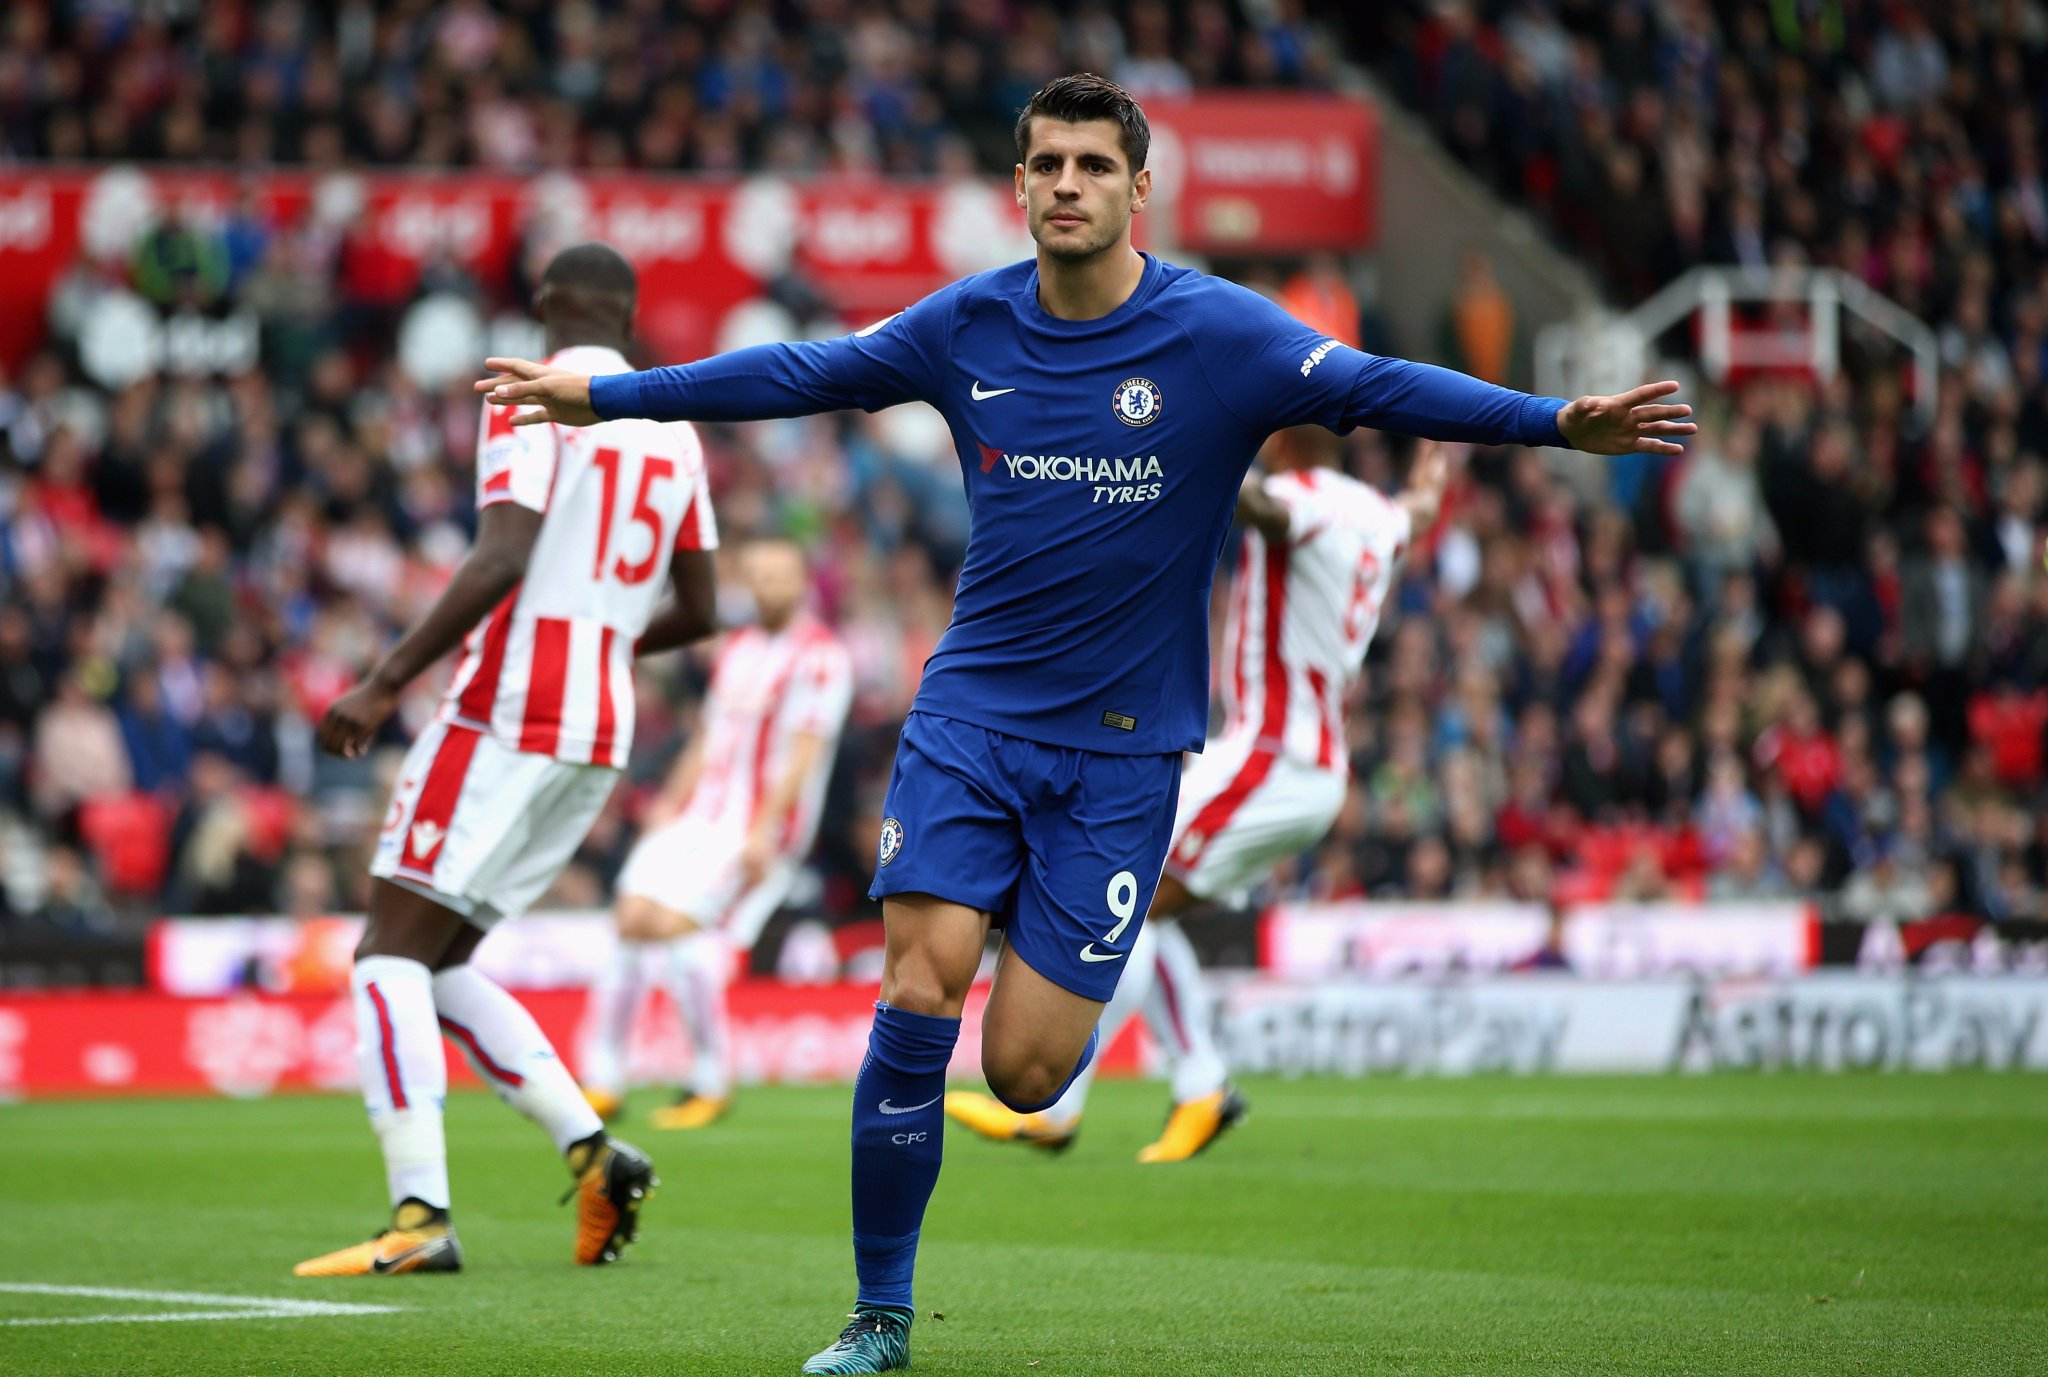 First Chelsea hat-trick. ✅  Take a bow, @AlvaroMorata! �� #STKCHE https://t.co/3UfFEm1Hmd